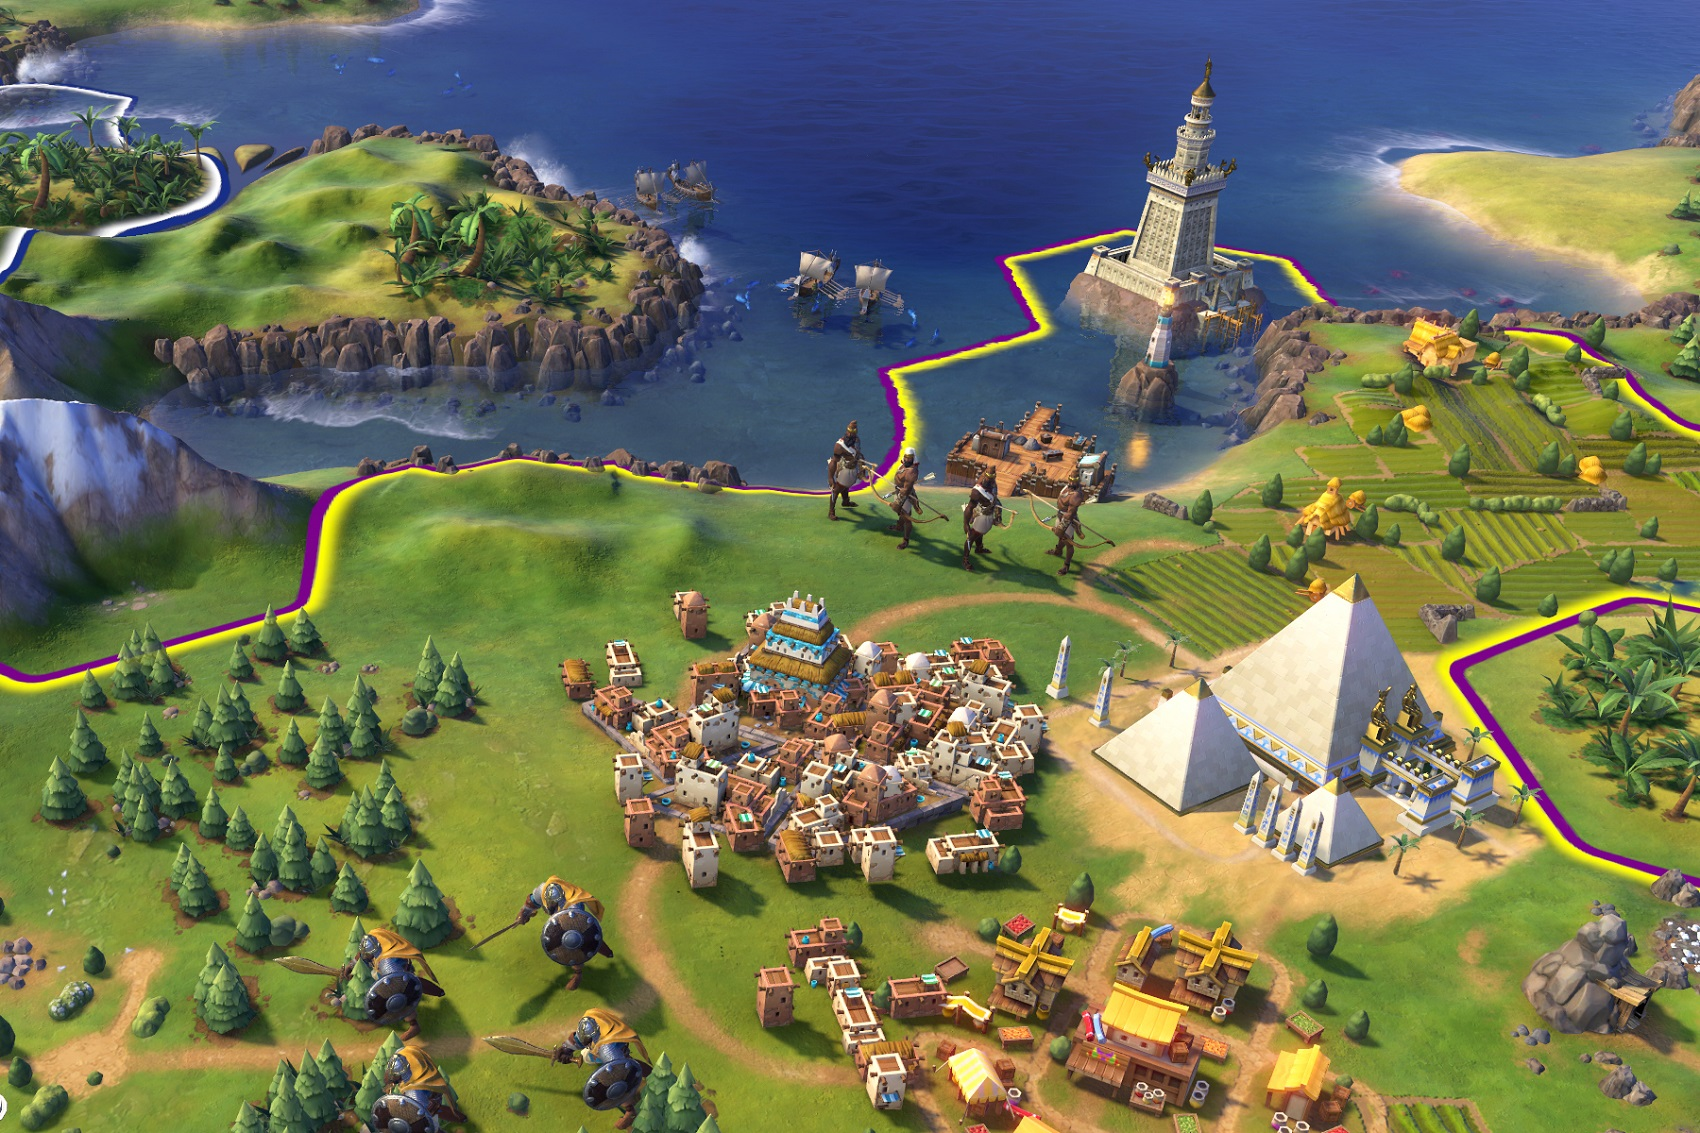 Civilization 6 Guide: Tips, Tricks & Strategies to Keep